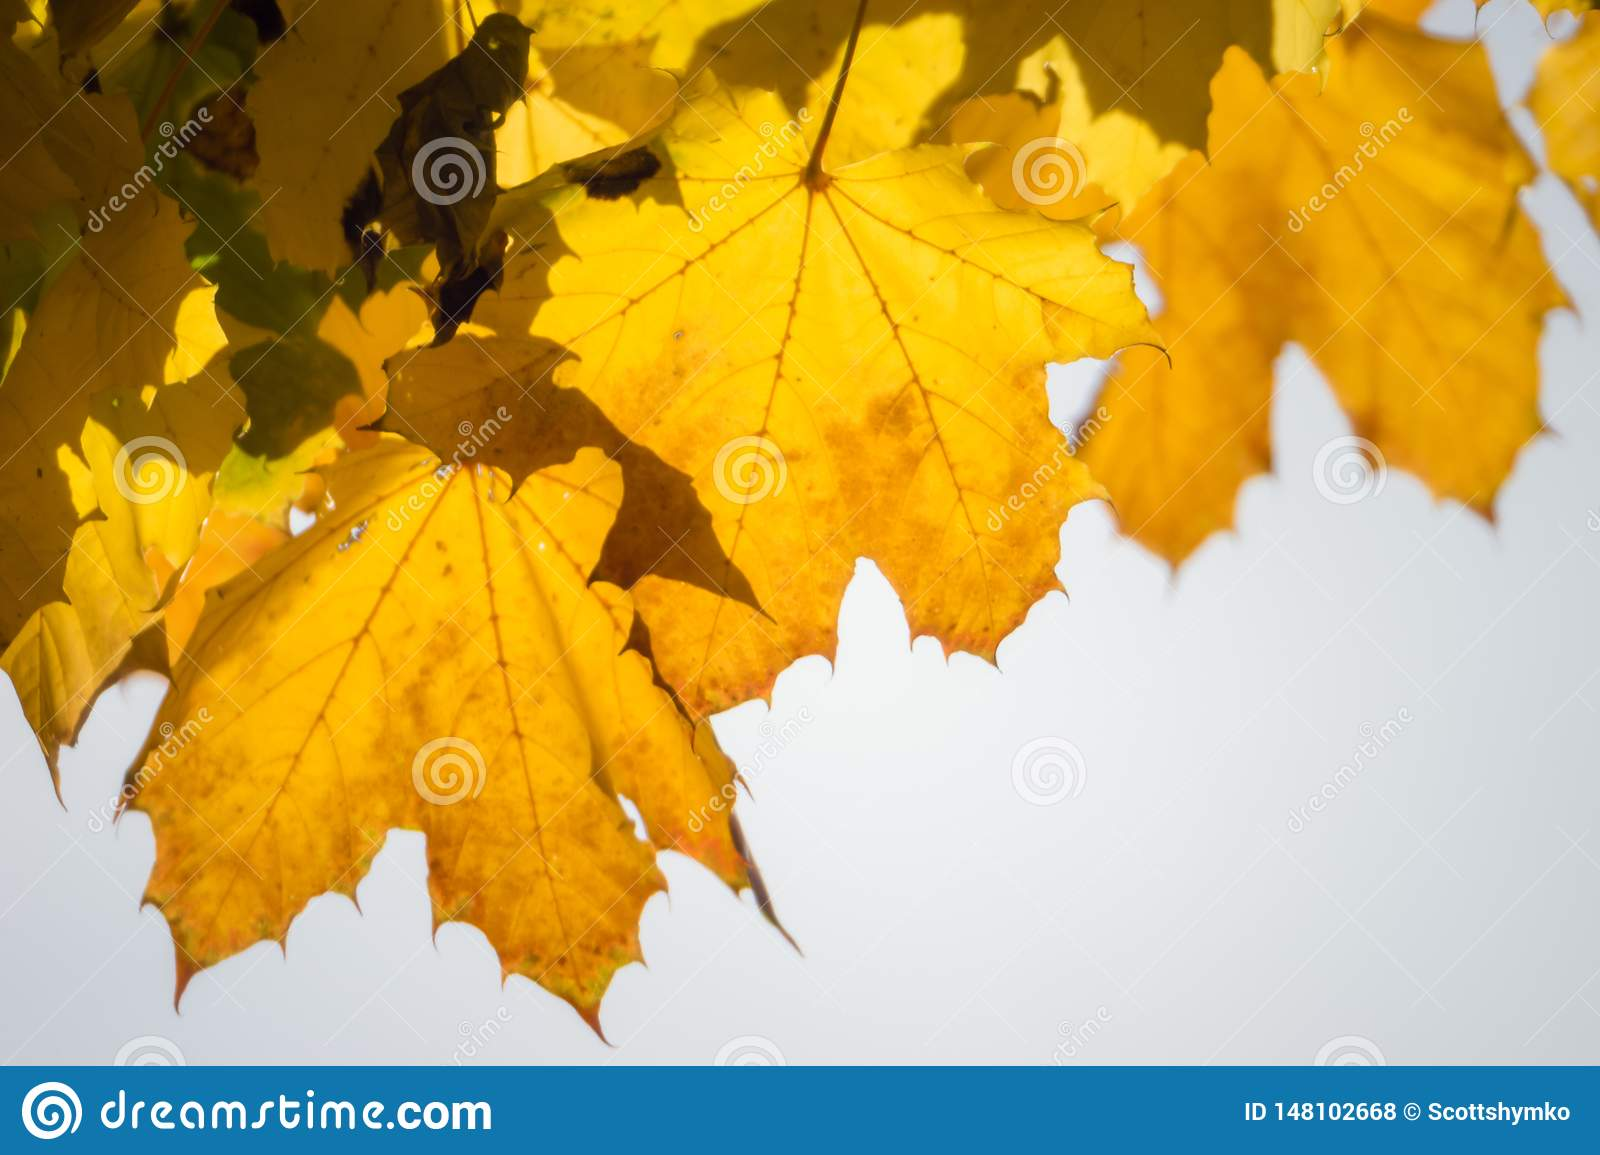 Yellow maple leaves cling to their tree